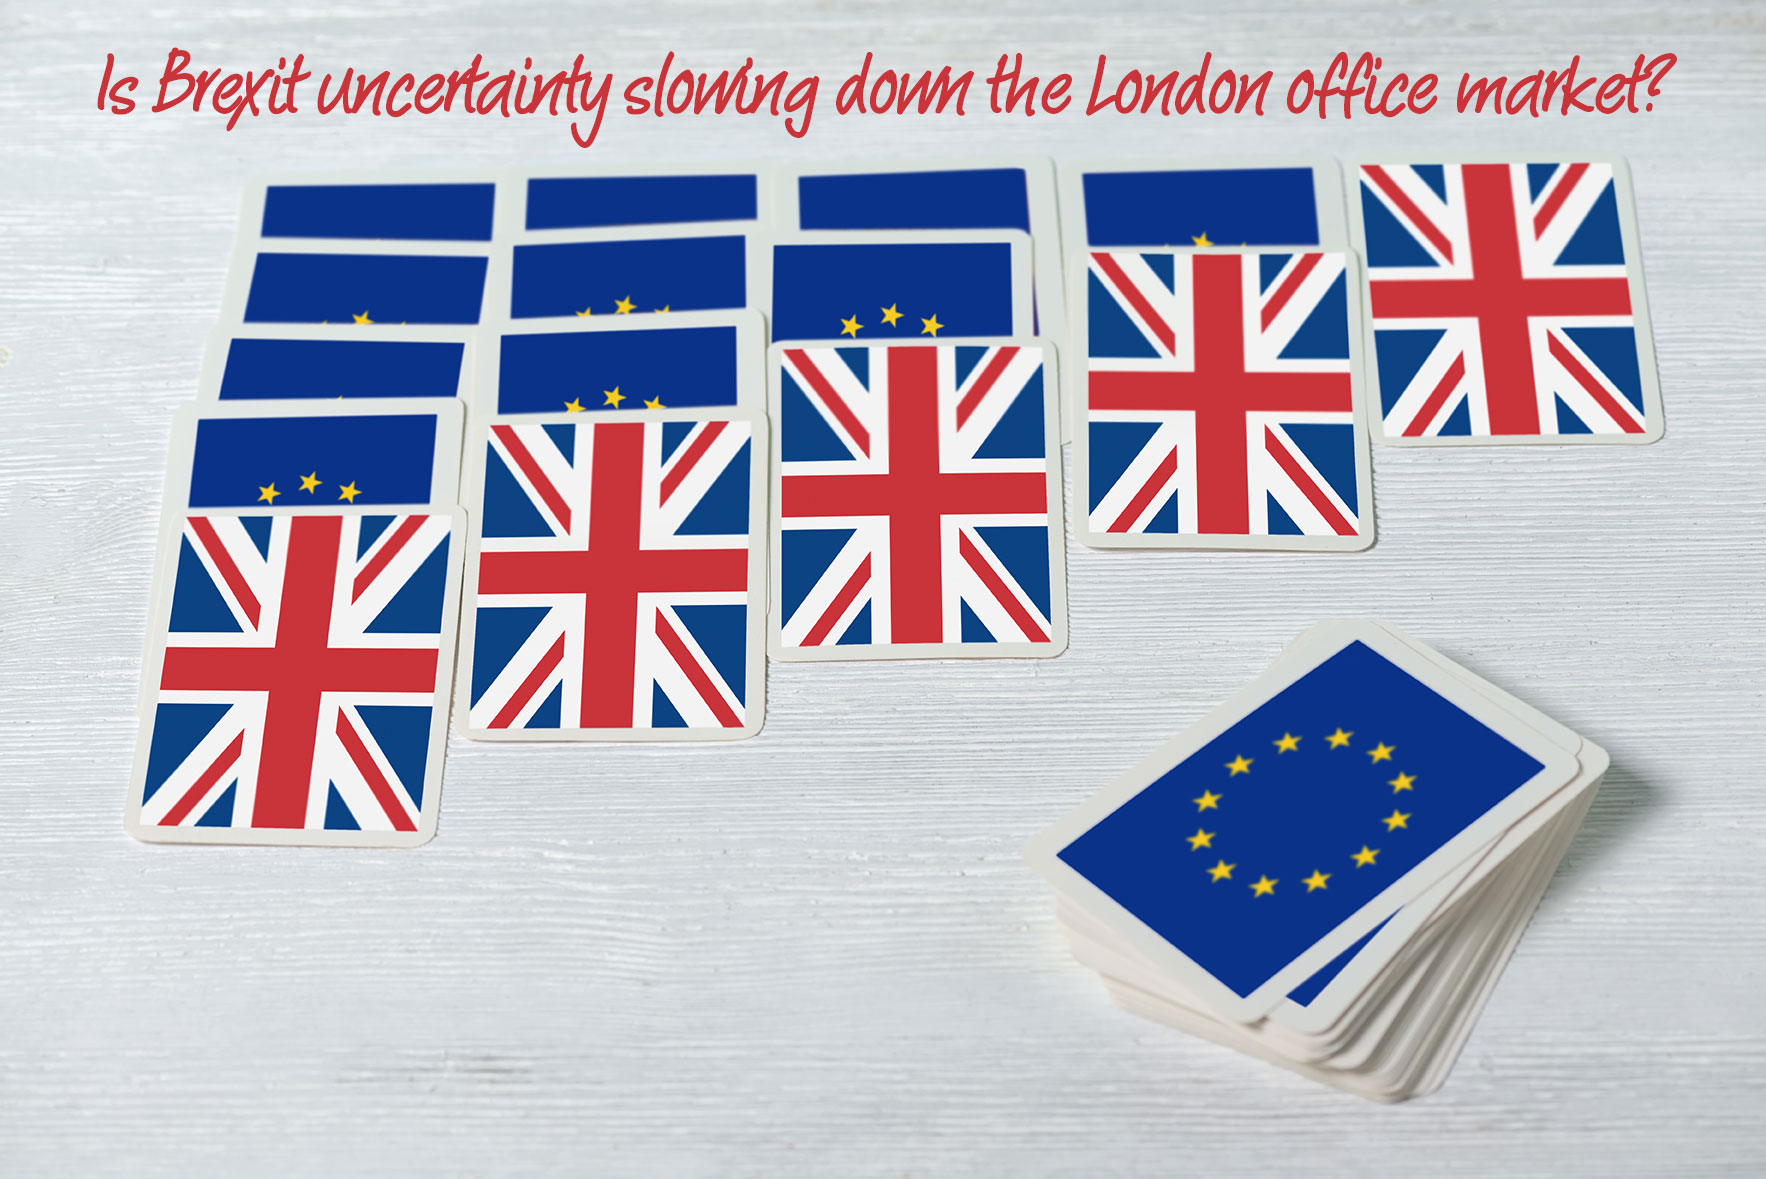 Is Brexit uncertainty slowing down the London office market?